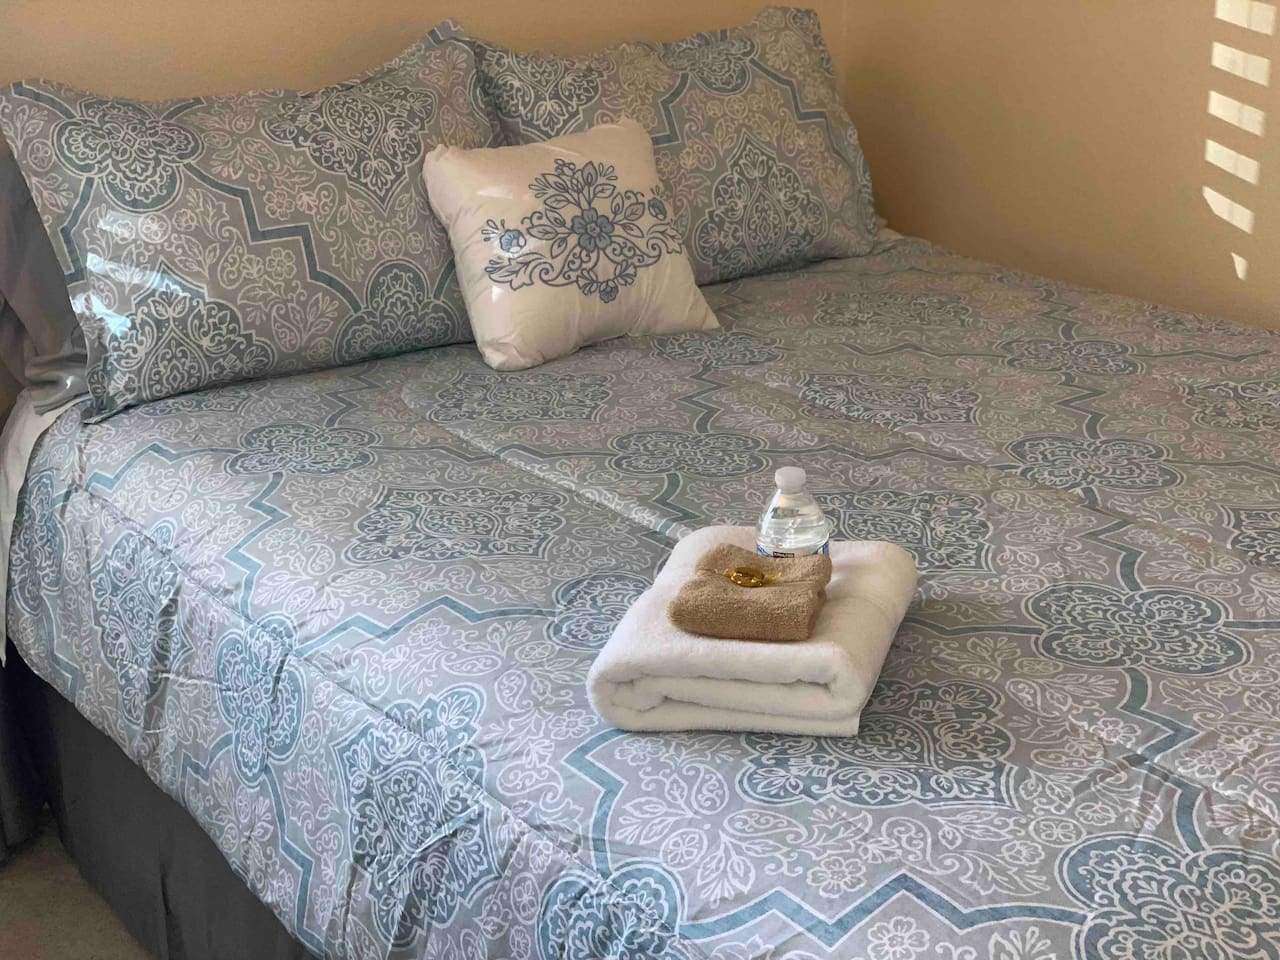 Comfy Queen Tempur-Pedic bed will help you relax after a hard days work and soothe you to sleep